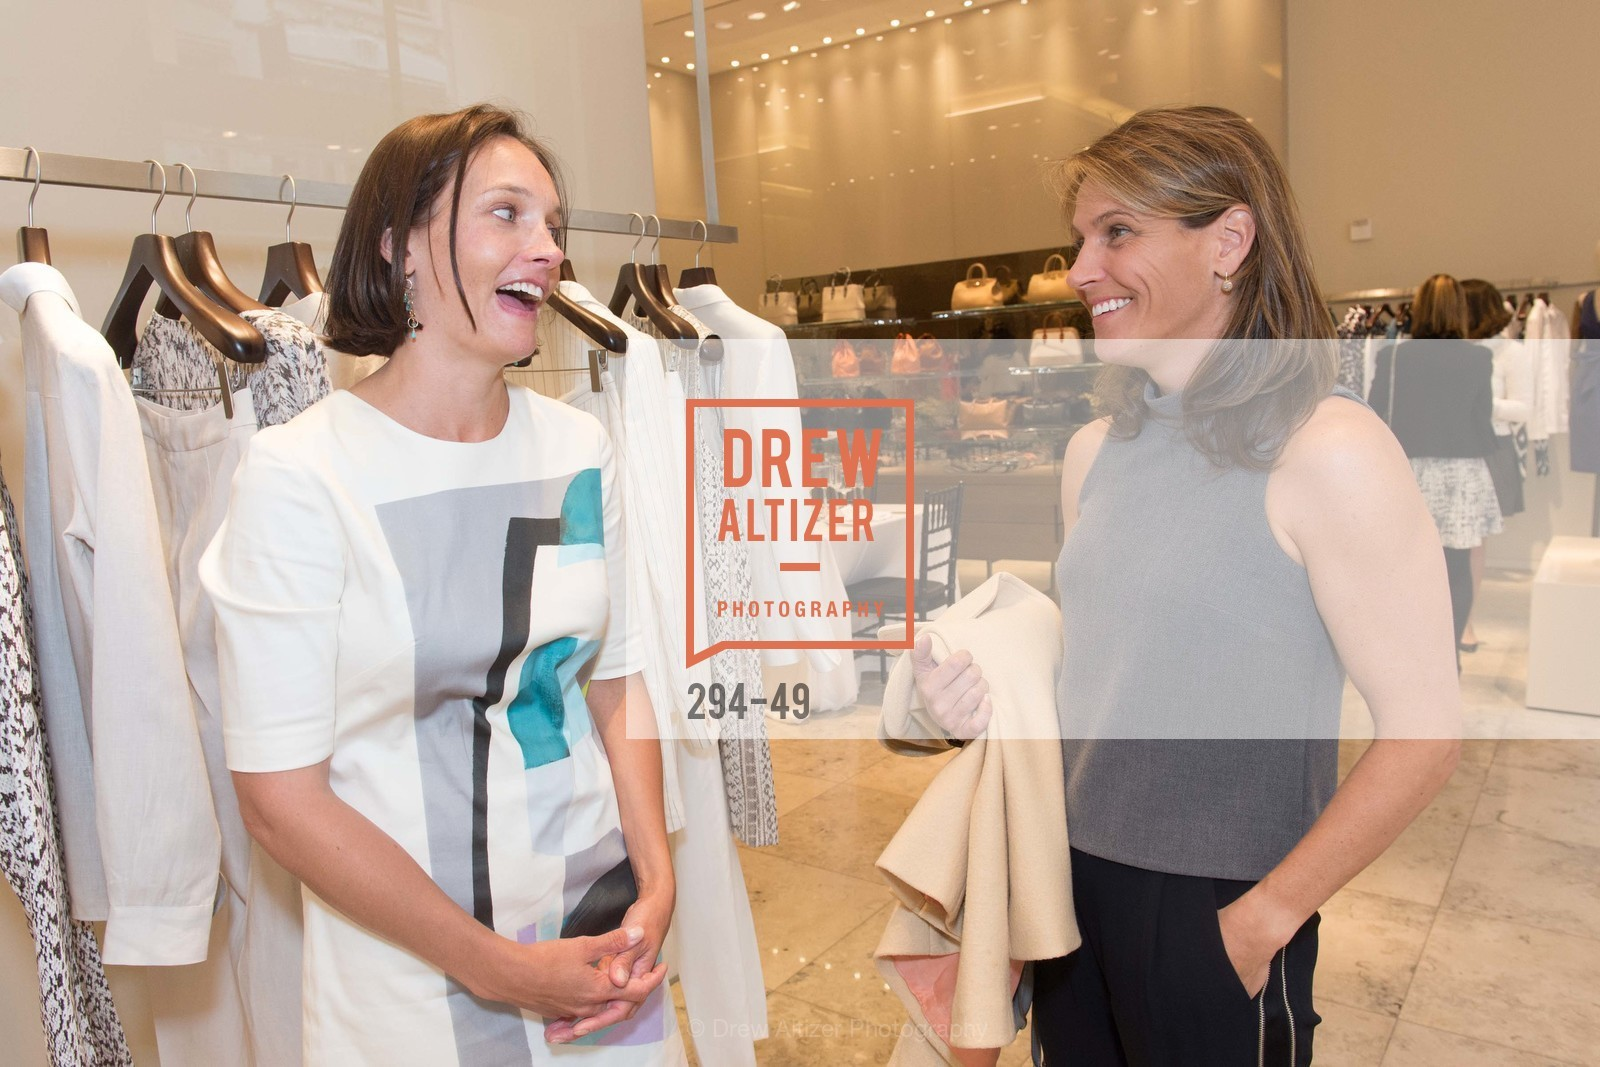 Betsy McDermott, Lee Sadrian, Luncheon Hosted by Max Mara, Max Mara. 175 Post St, San Francisco, CA 94108, April 21st, 2015,Drew Altizer, Drew Altizer Photography, full-service agency, private events, San Francisco photographer, photographer california